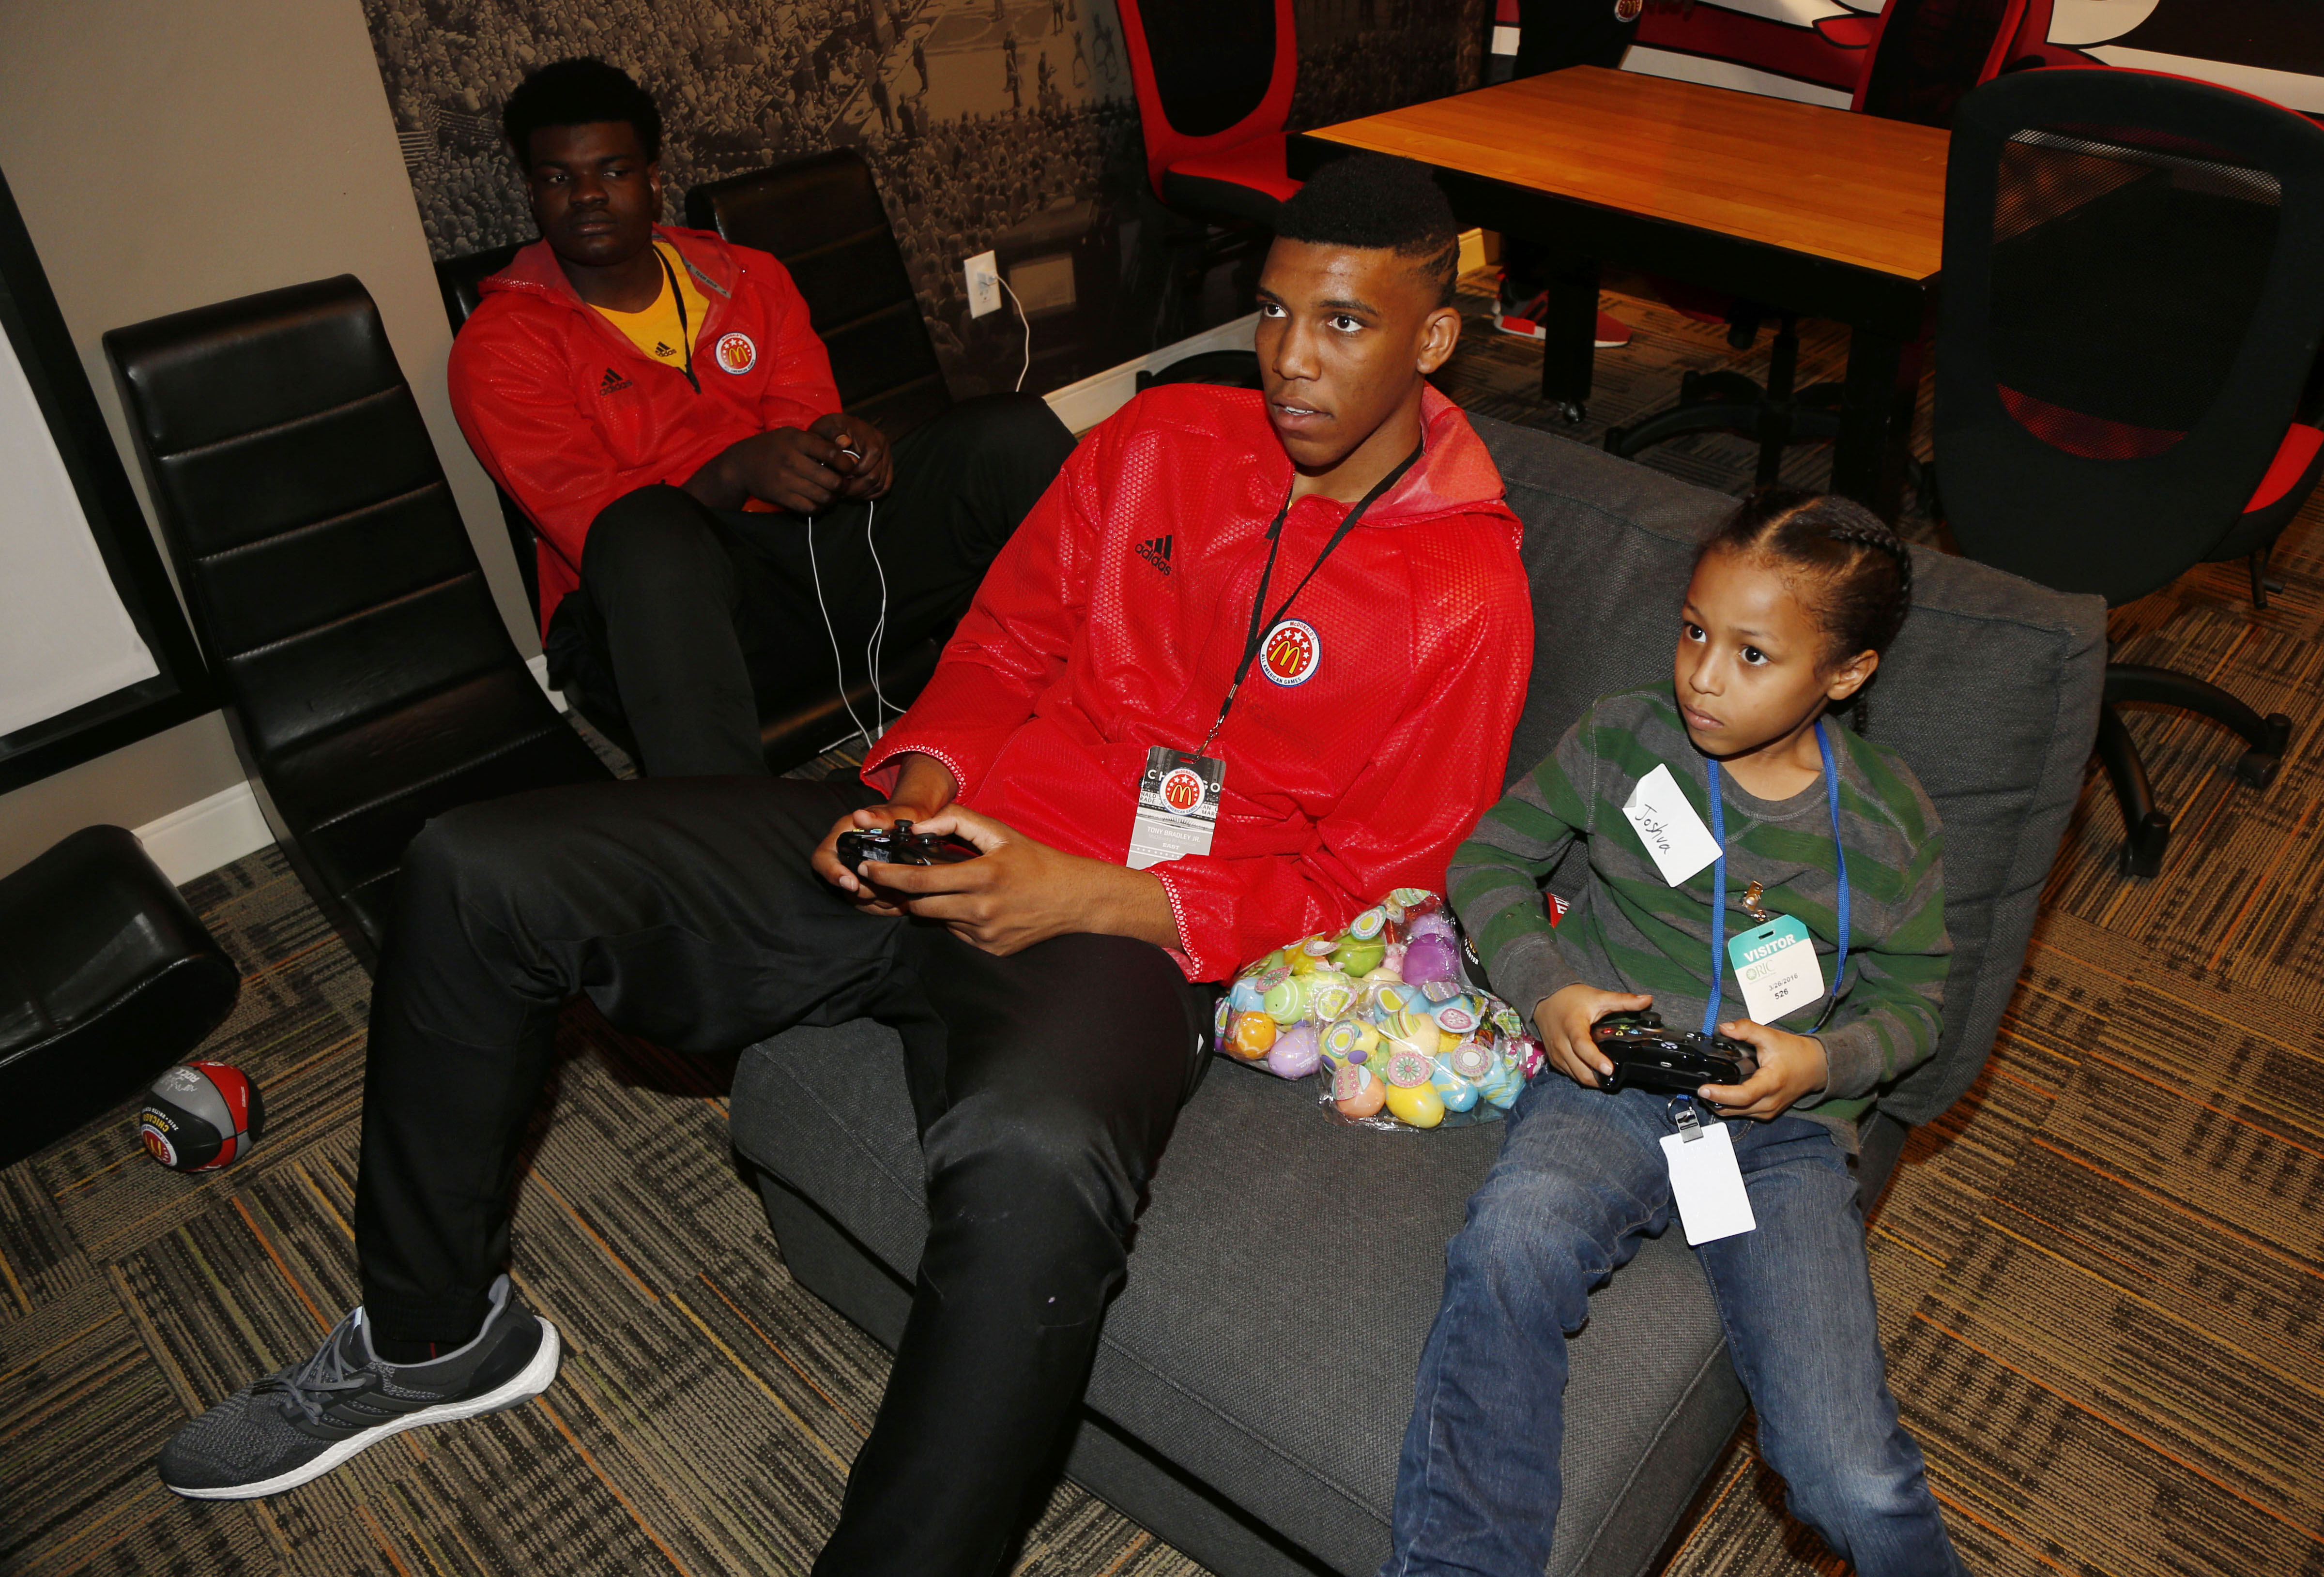 Tony Bradley Jr. plays video games with a child at the Ronald McDonald House (Photo: Brian Spurlock, USA TODAY Sports)